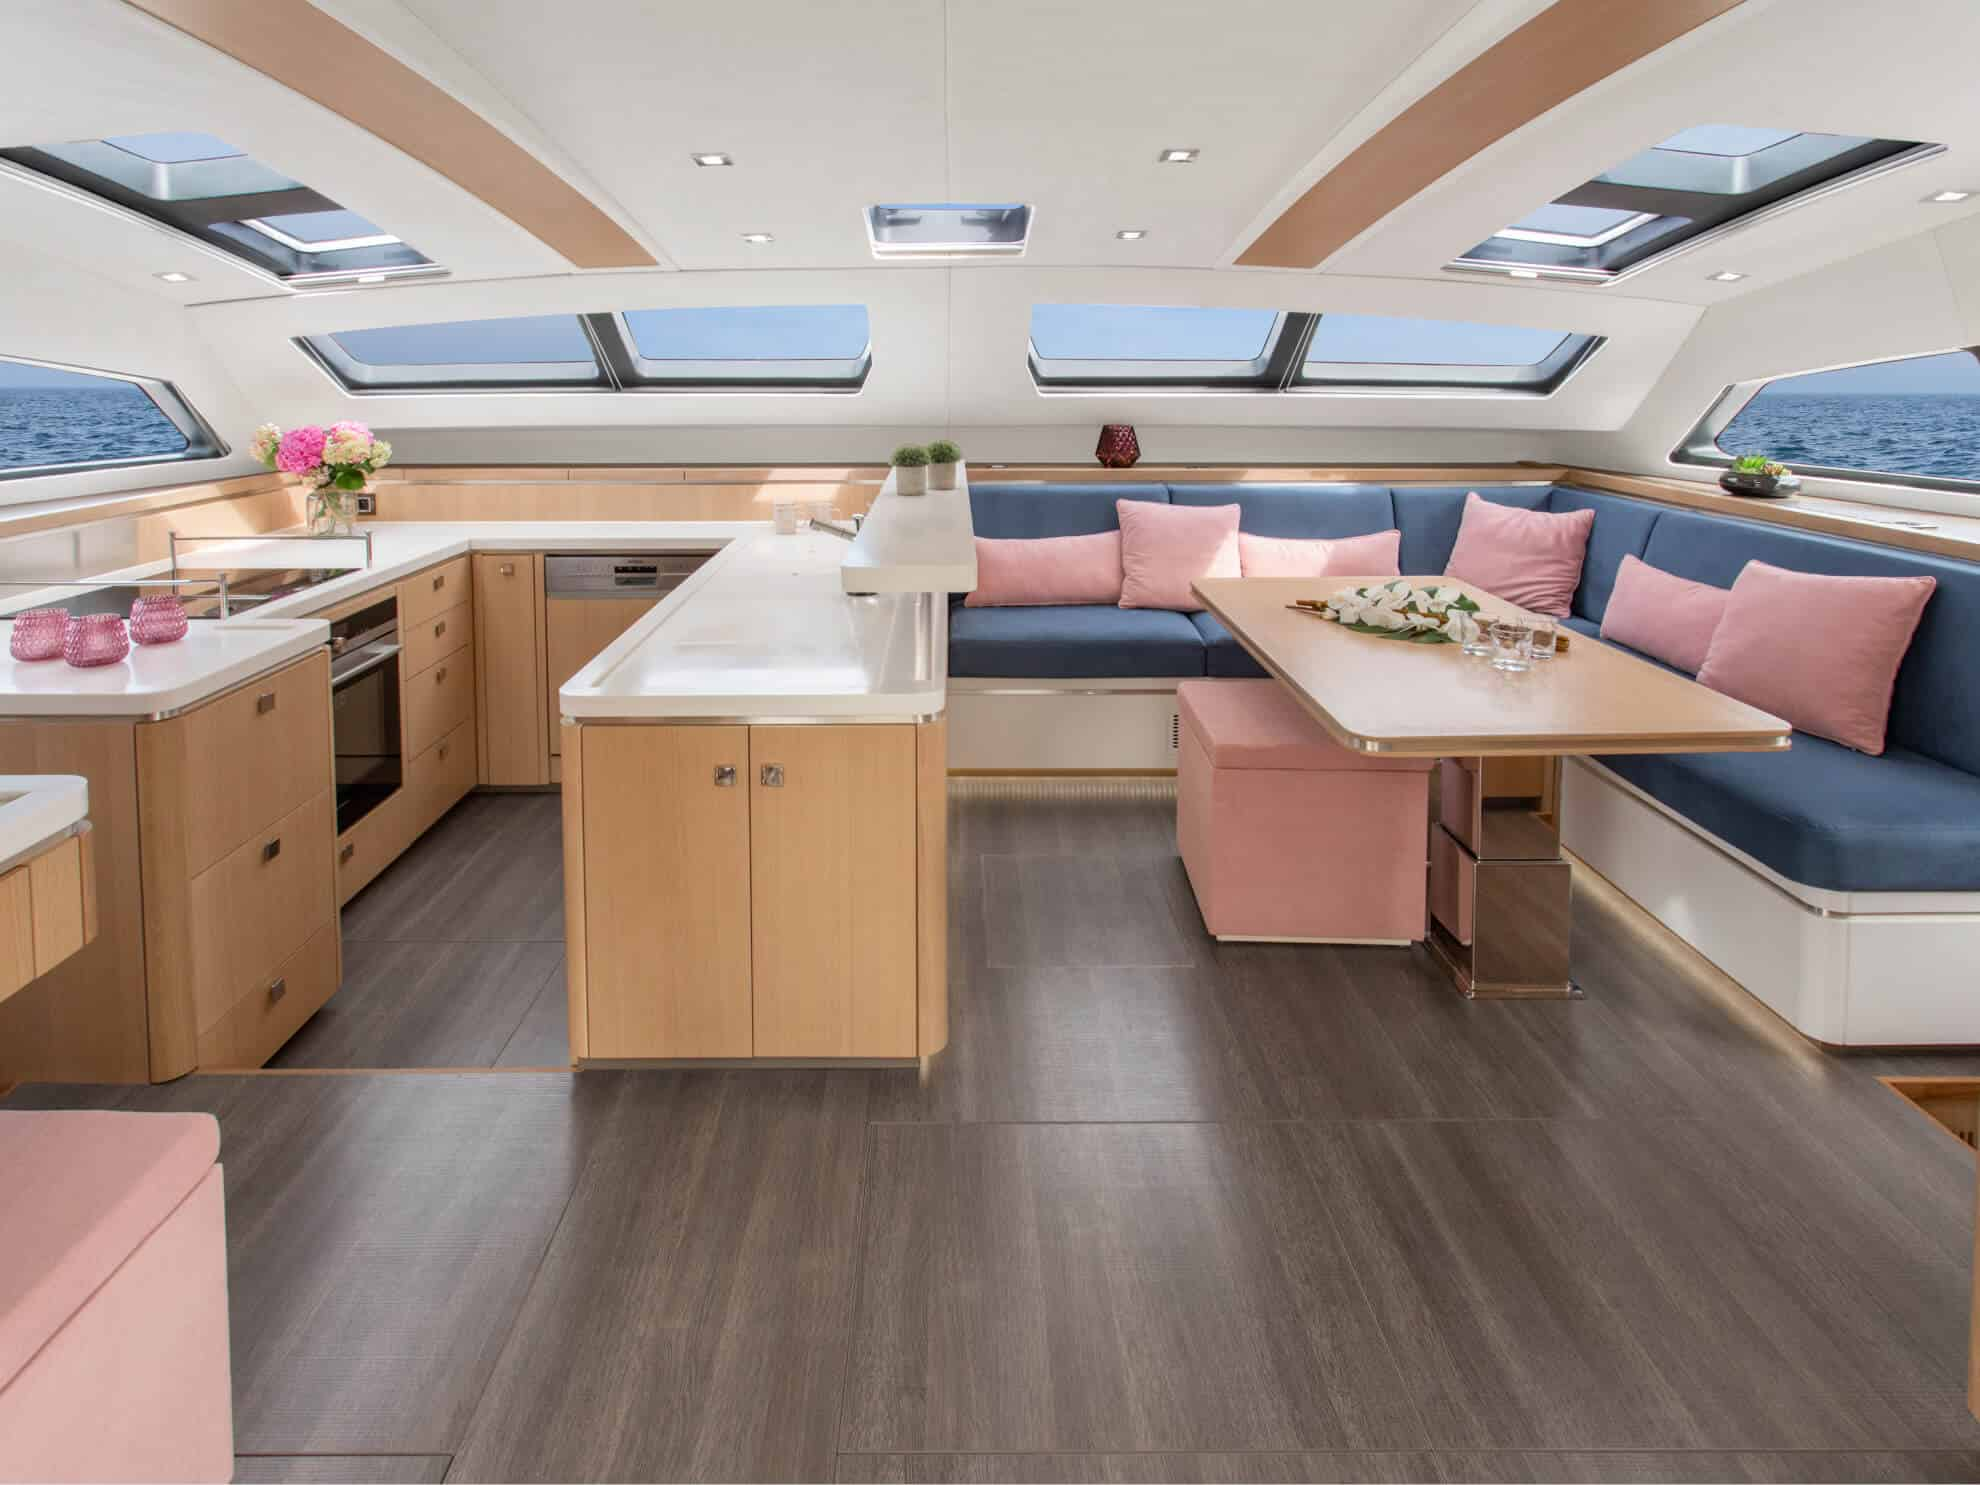 Salon overview aboard the Euphorie 5